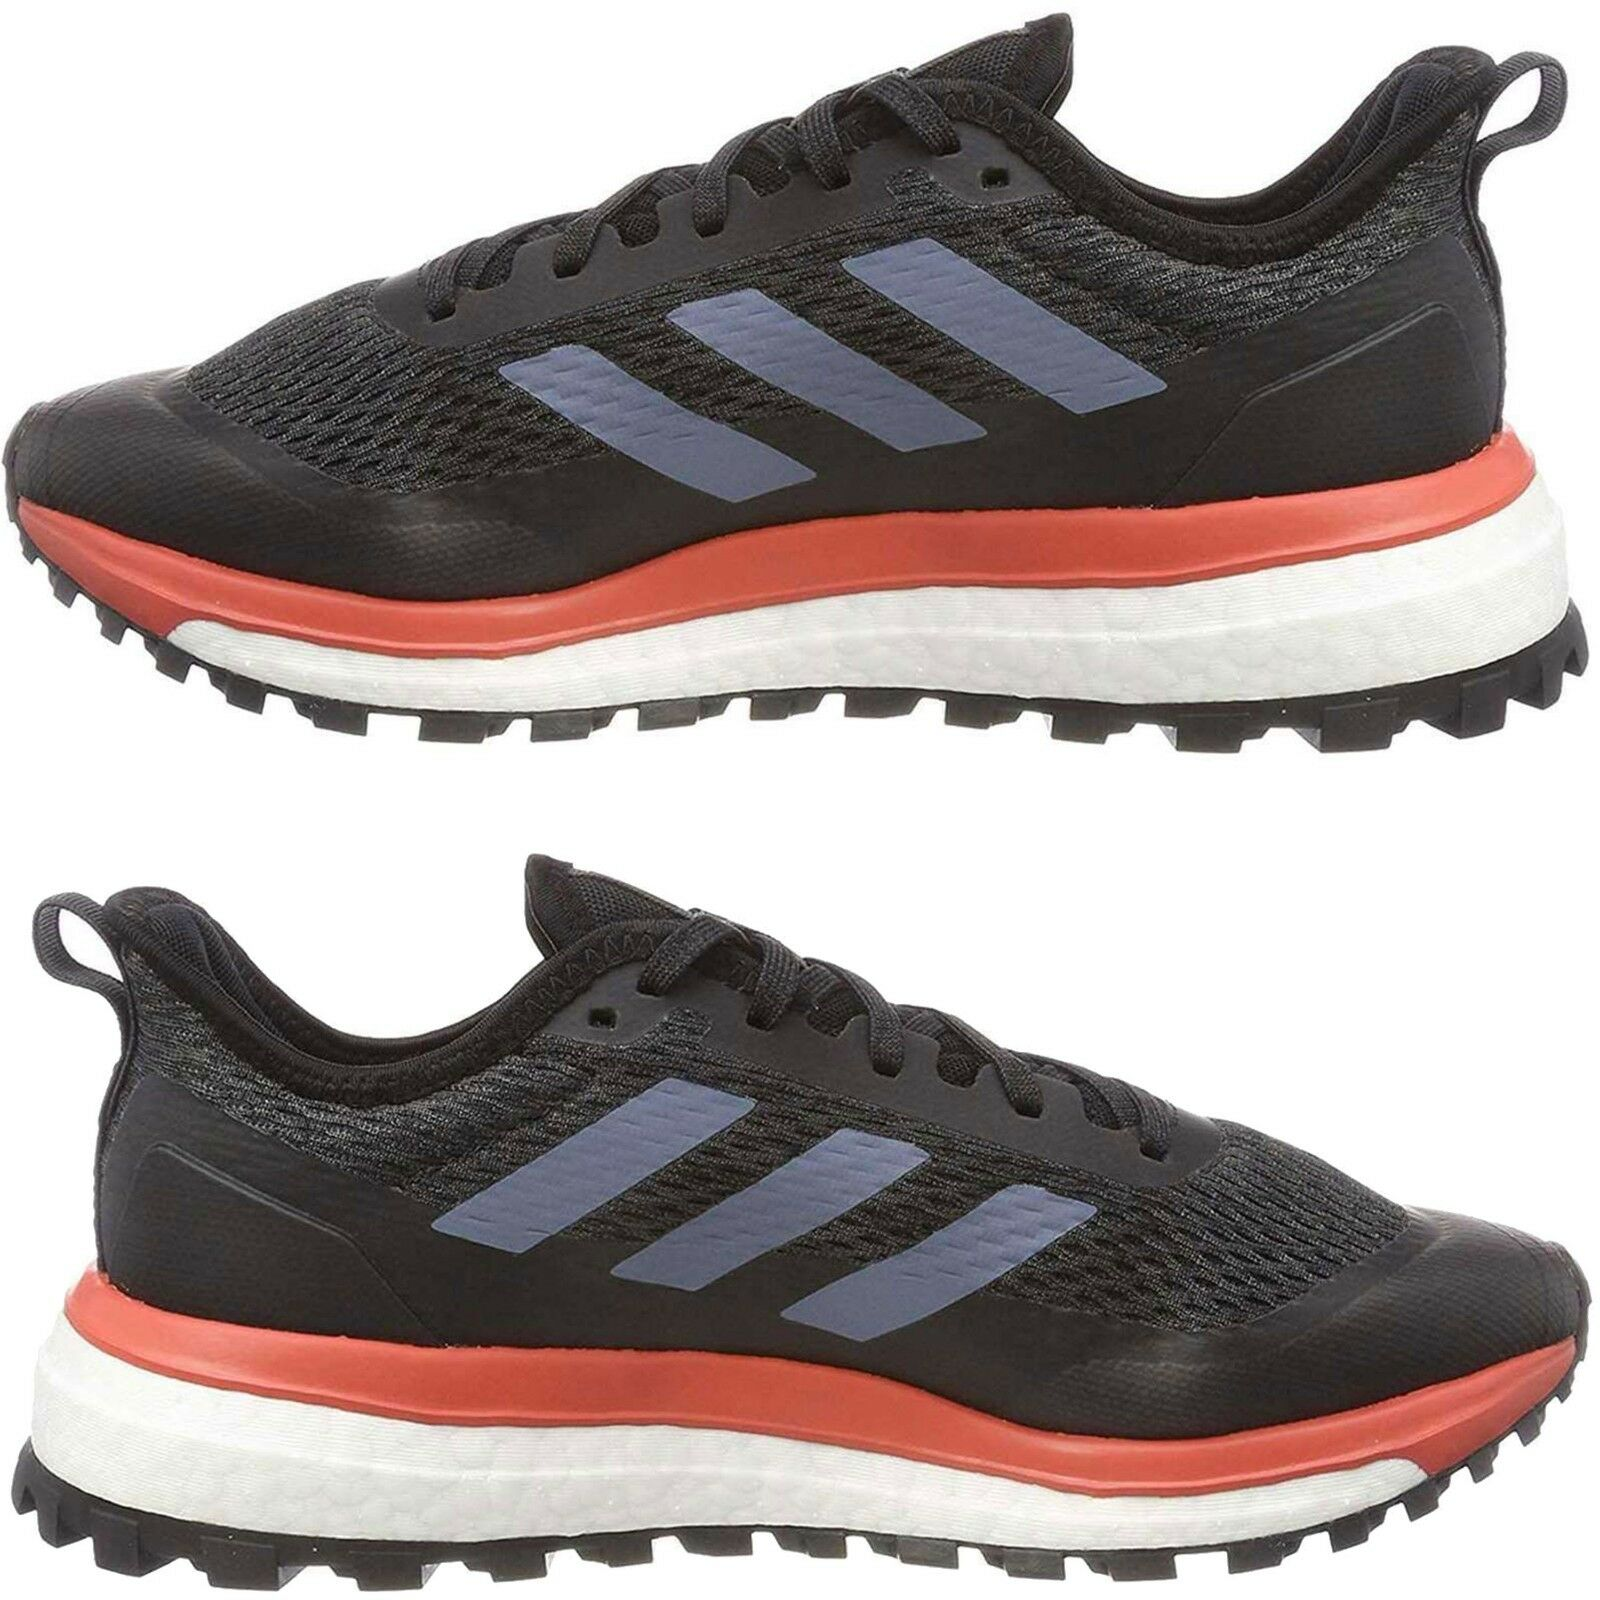 1f6467c88c6f4d NEW Adidas damen Athletic Training schuhe Response Trail Trail Trail  Running Lace Up Turnschuhe 441c3d